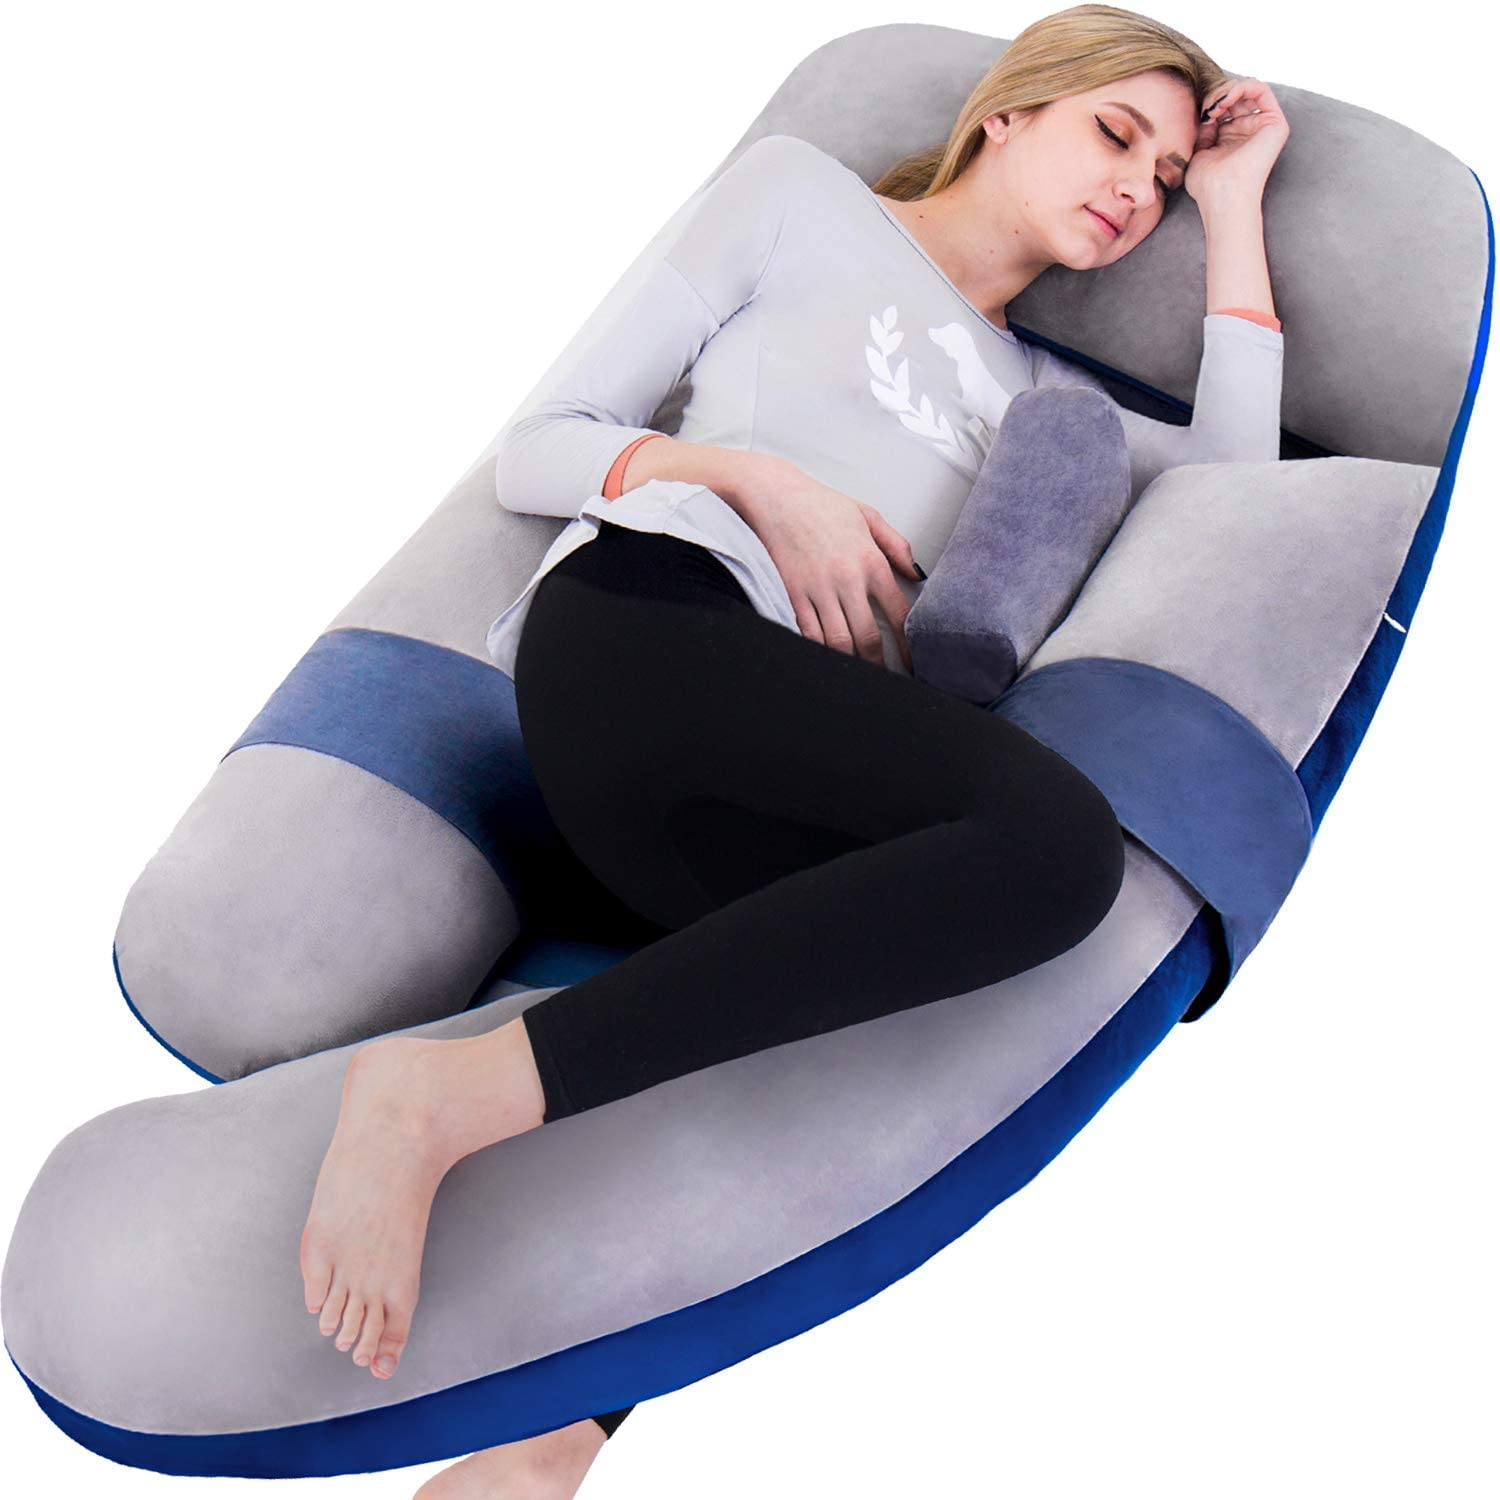 60in Full Body Pillow | Nursing, Maternity and Pregnancy Body Pillow |Awesling Extra Large U Shape Pillow and Lounger with Detachable Side, Separate Support Pillow and Removable Cover (Grey Blue)